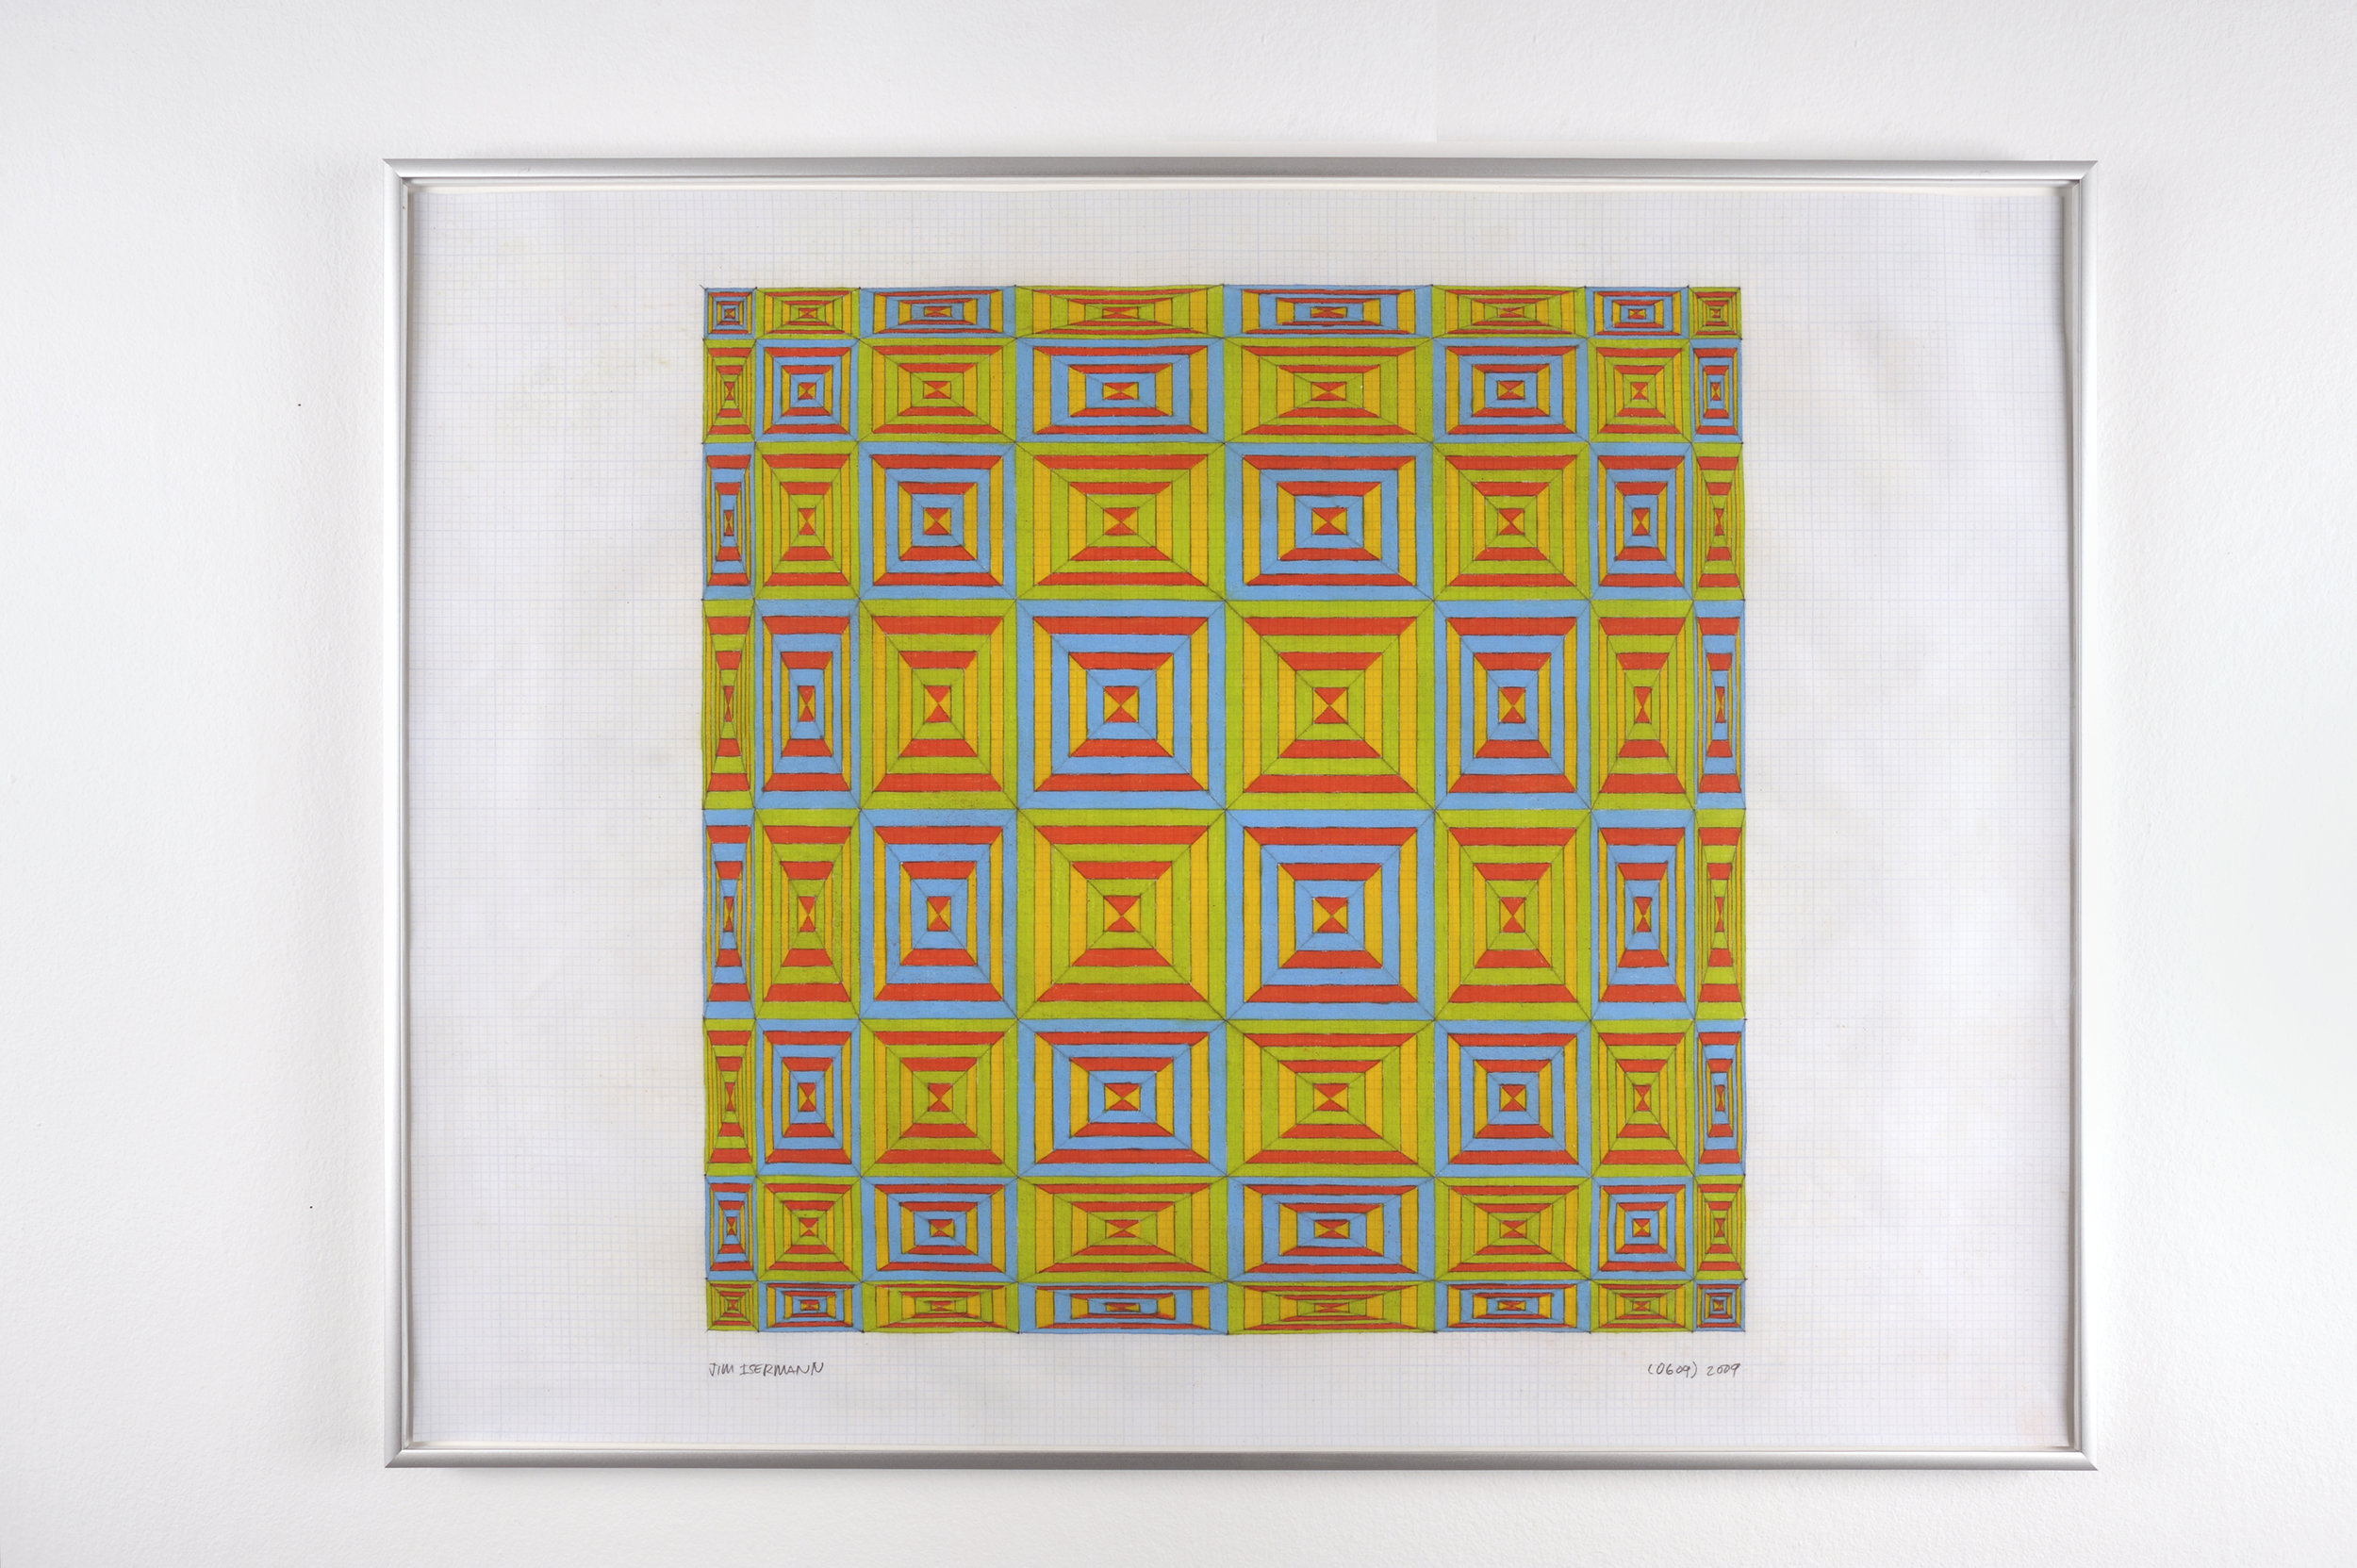 Untitled (0609), 2009 colored pencil on grid paper 47,5 x 62,7 cm - 18 3/4 x 24 5/8 inches